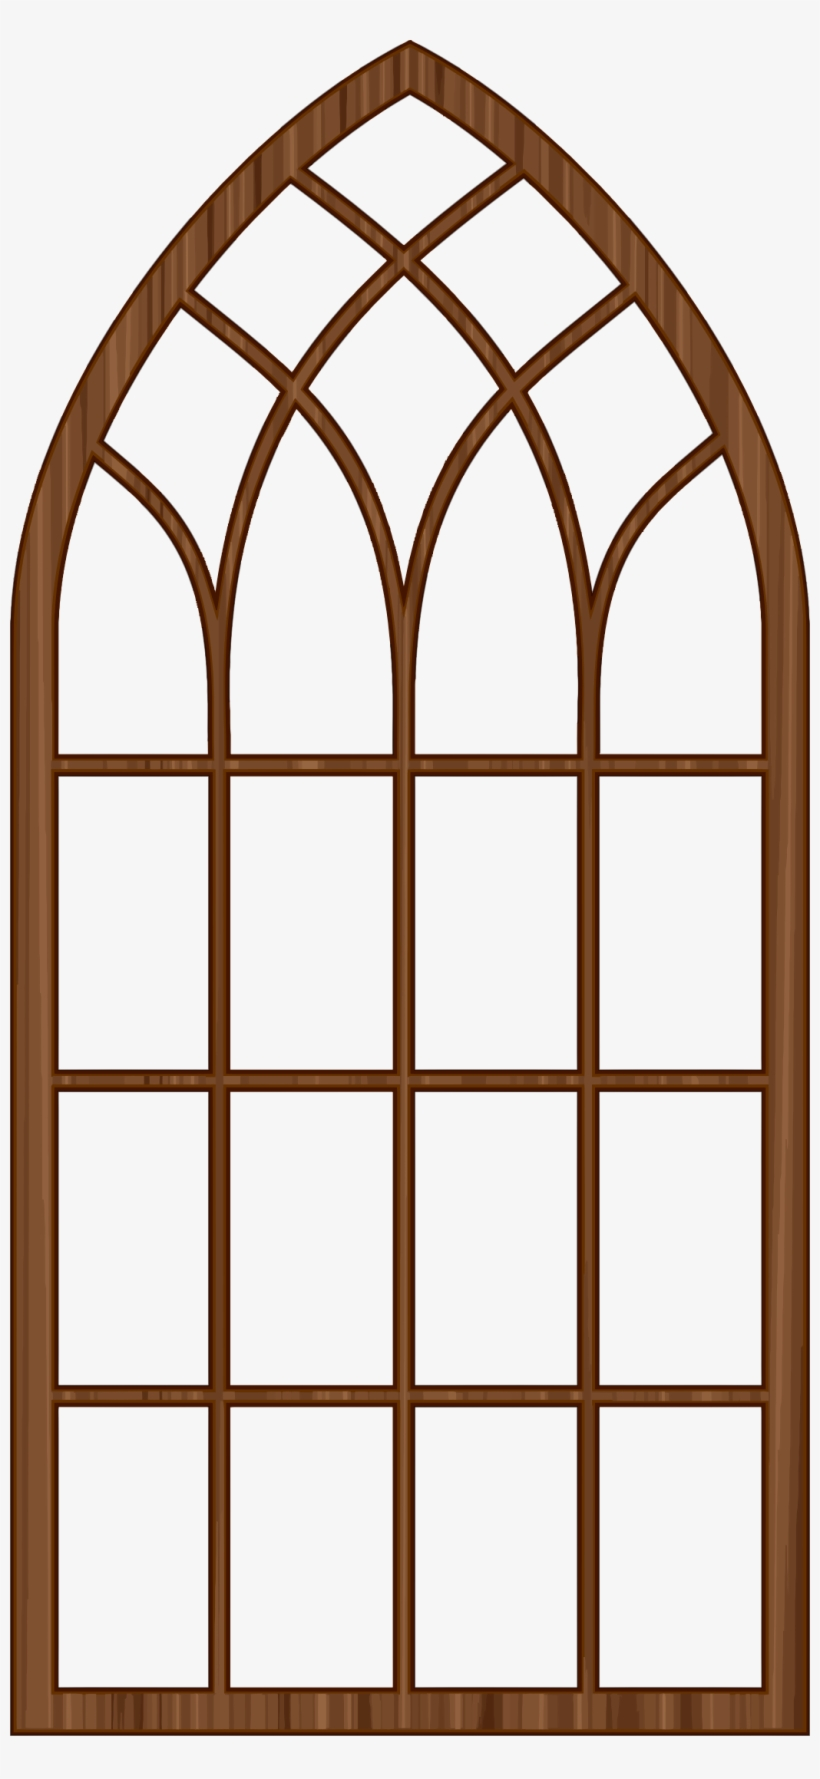 This Free Icons Png Design Of Wooden Window Frame 2 Free